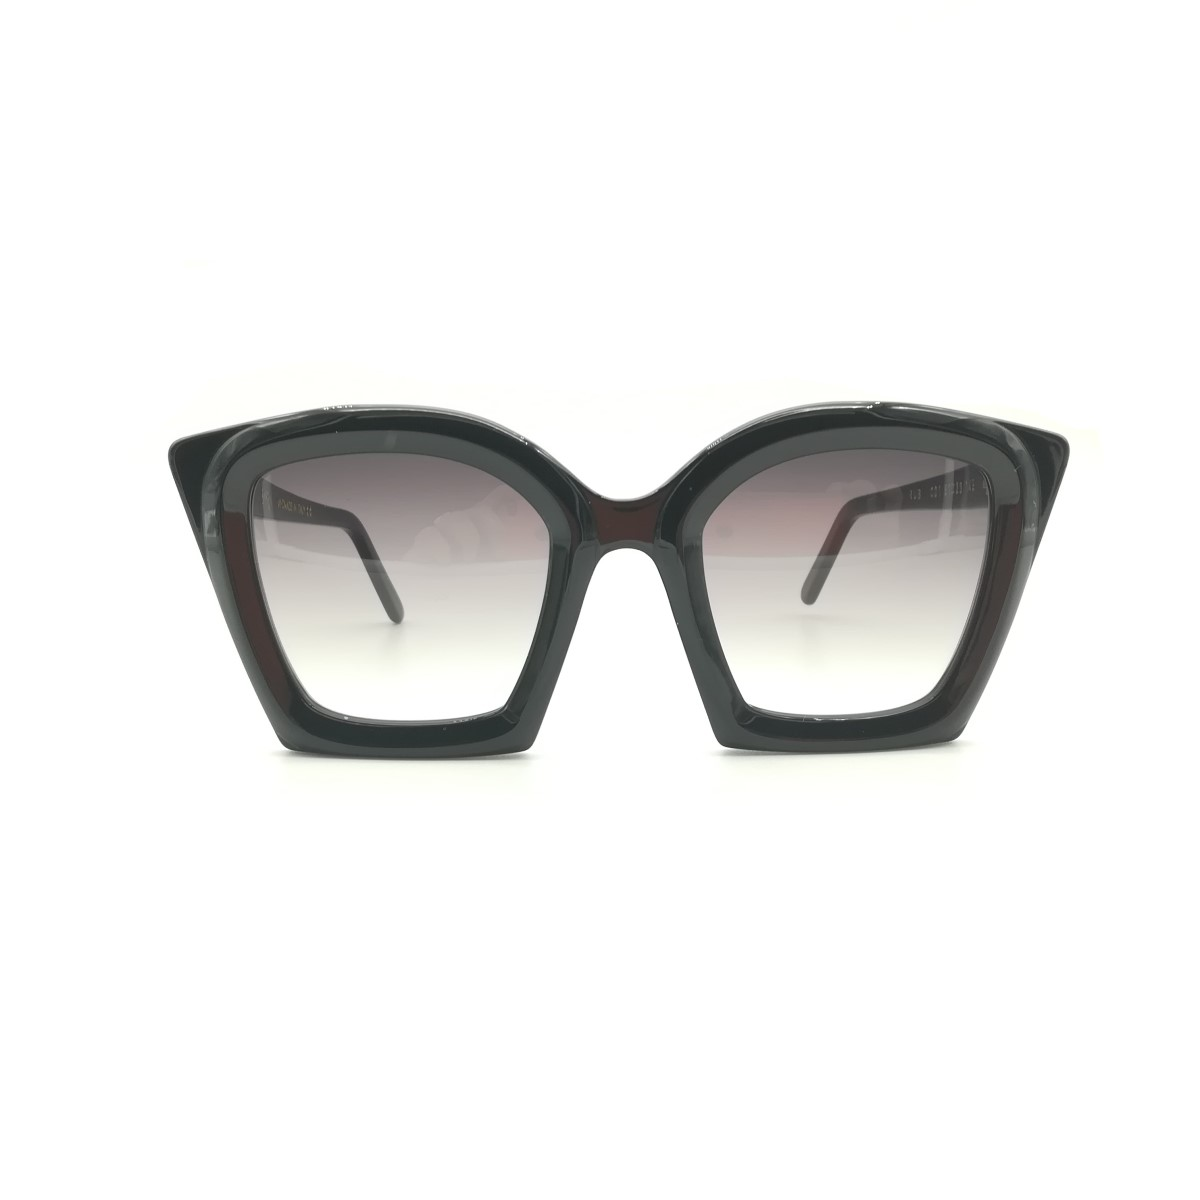 LUXURY EYEWEAR DESIGN, HANDMADE IN ITALY BAYRIA EYEWEAR